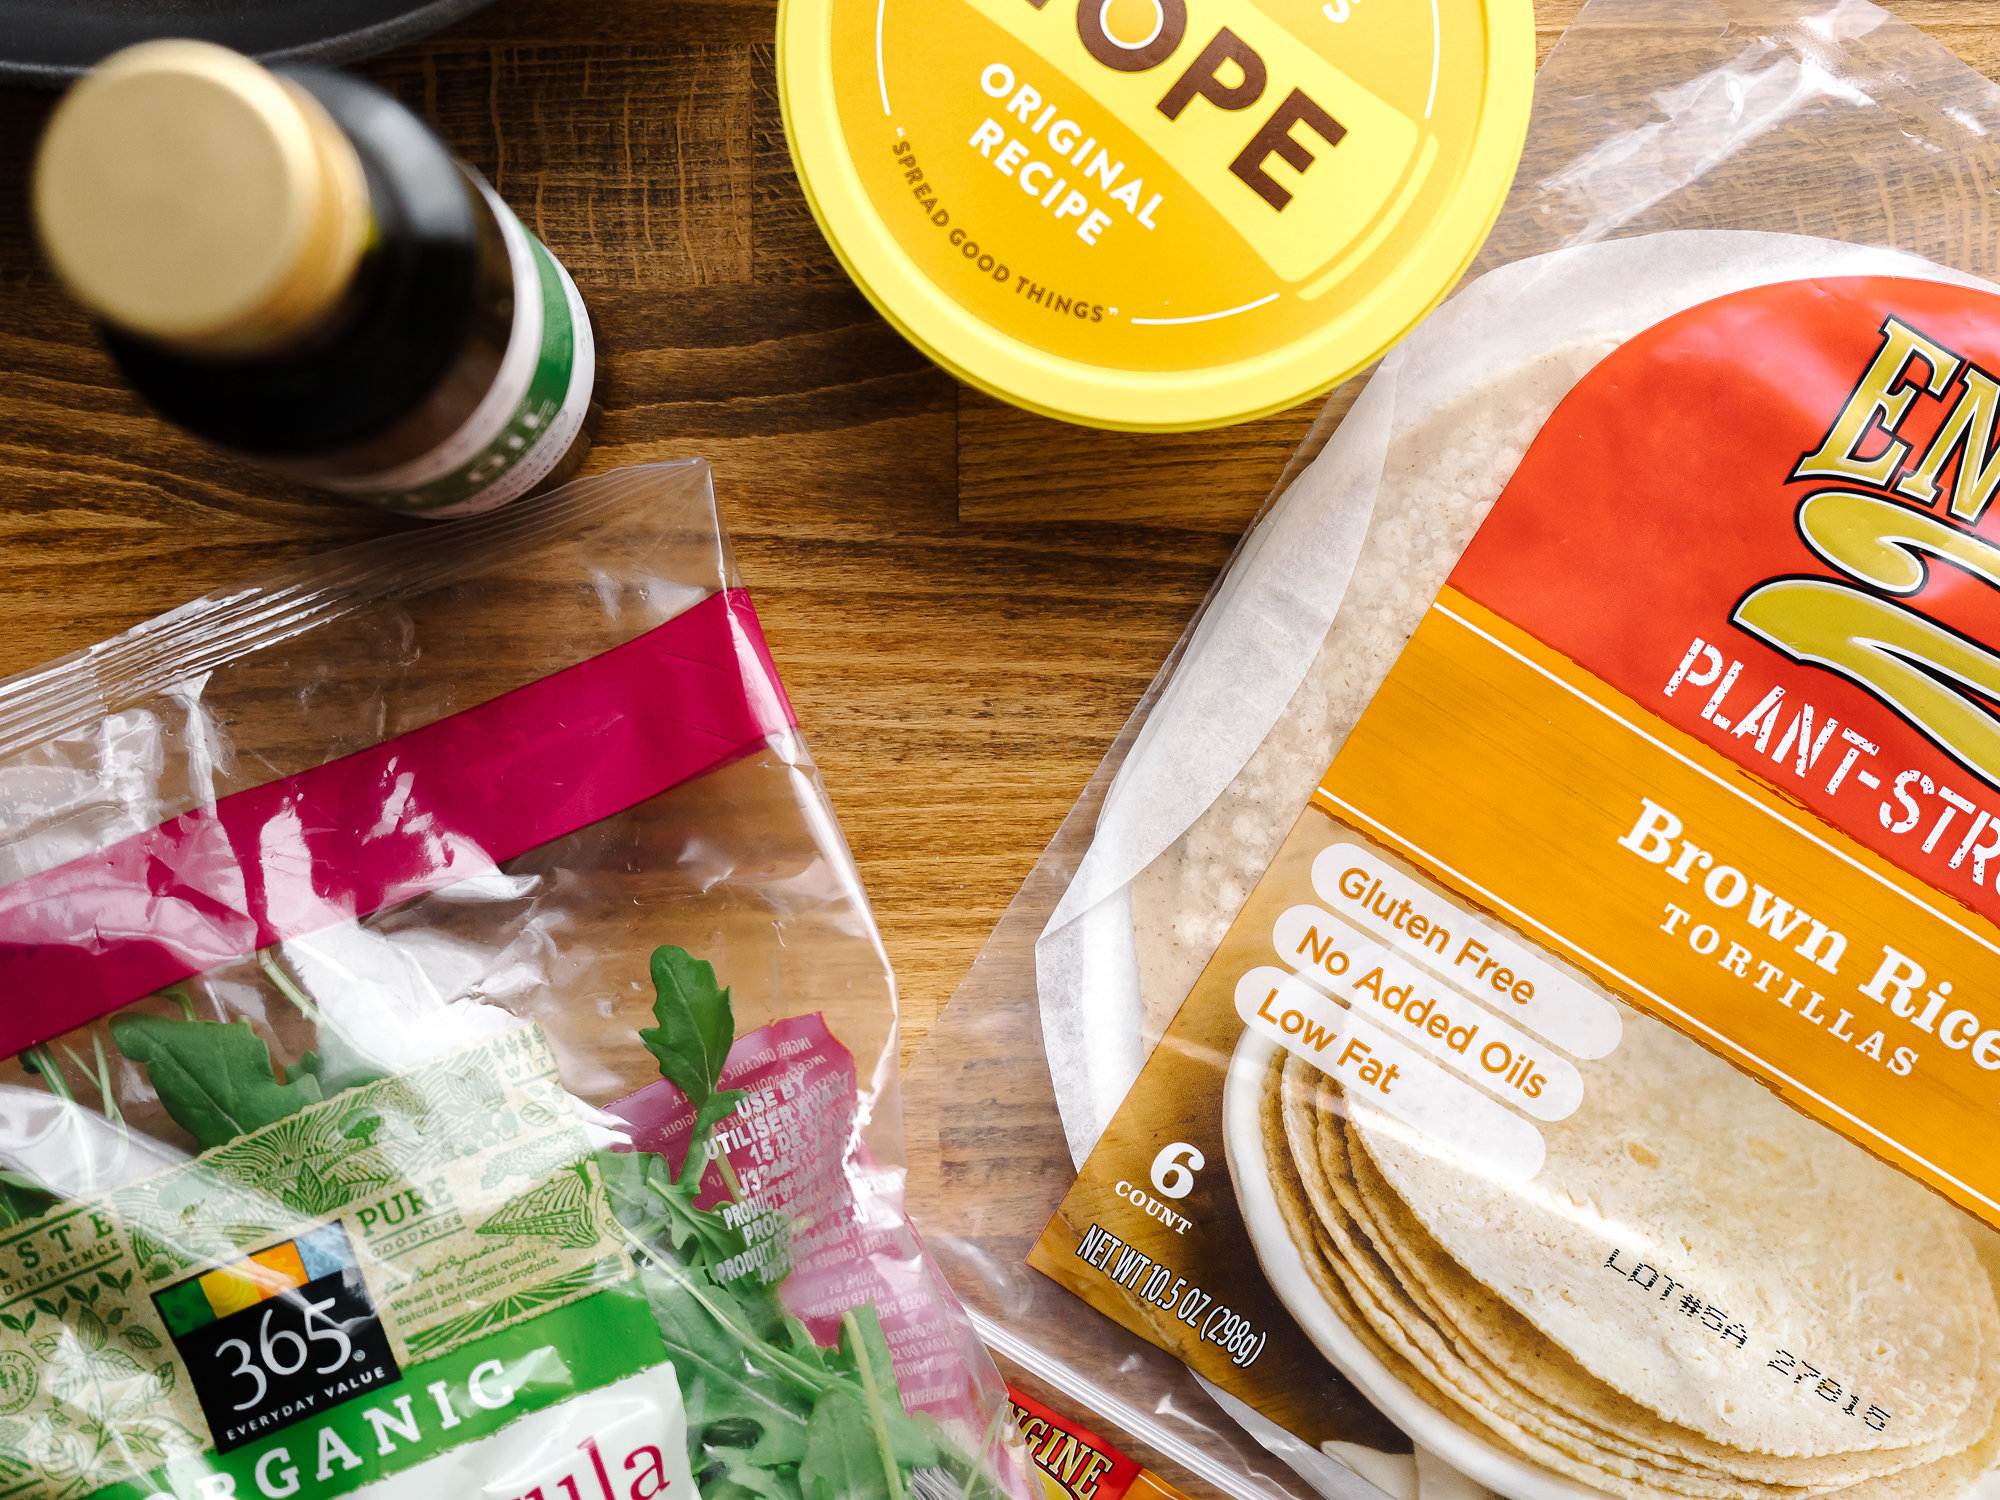 Ingredients for Vegetarian Quesadilla With Sweet & Tangy Dipping Sauce